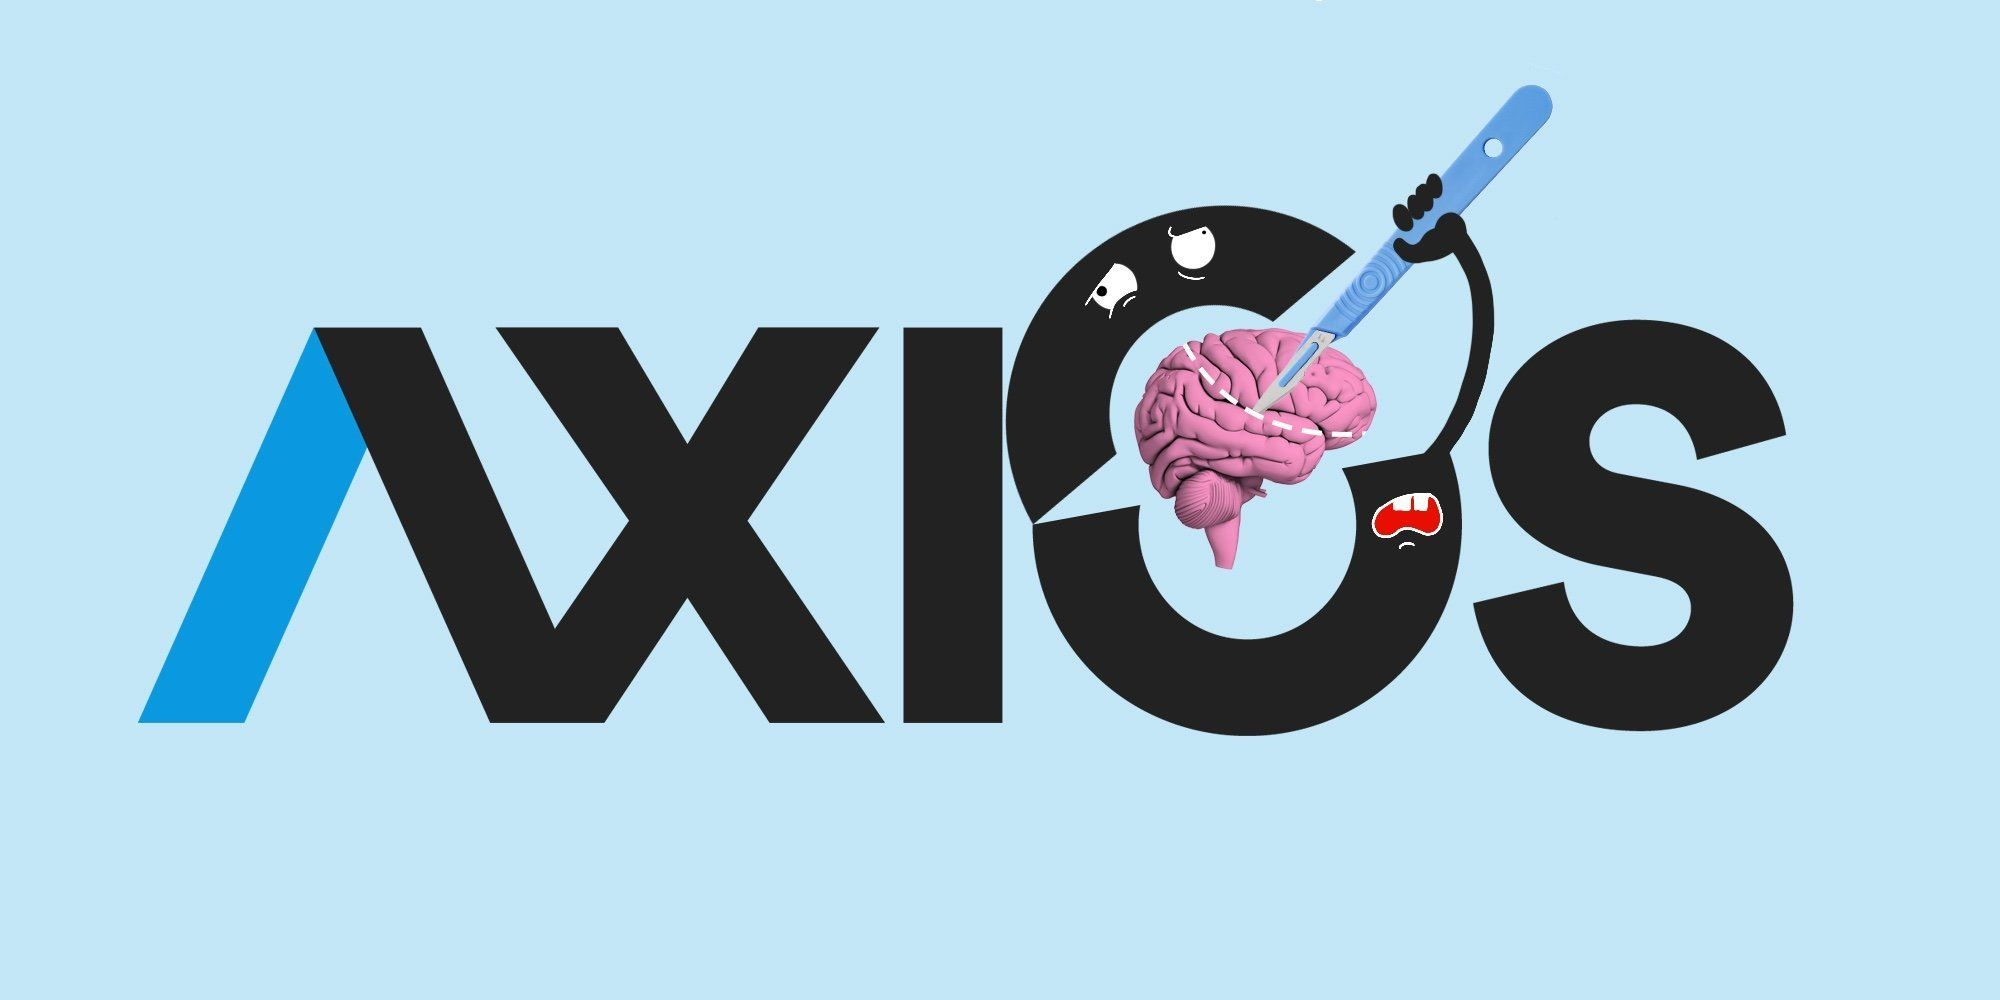 Leak: Axios Editor Concedes Problems With HBO 'S**tshow' But Assures Staff That Haters Are Just